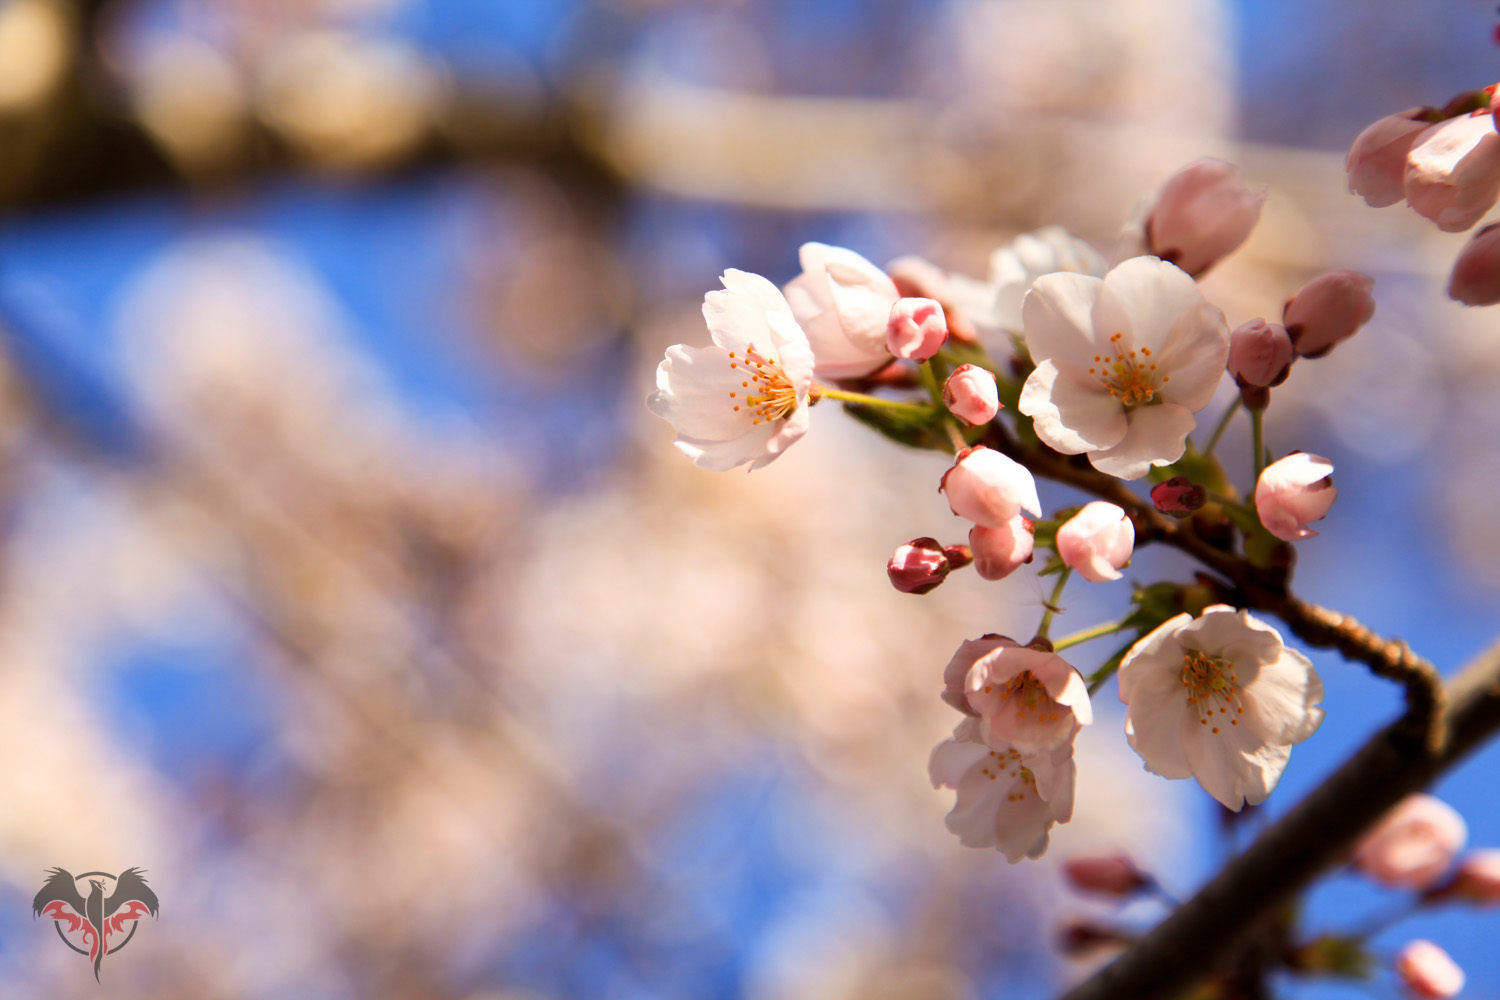 In bloom: High Park cherry blossoms